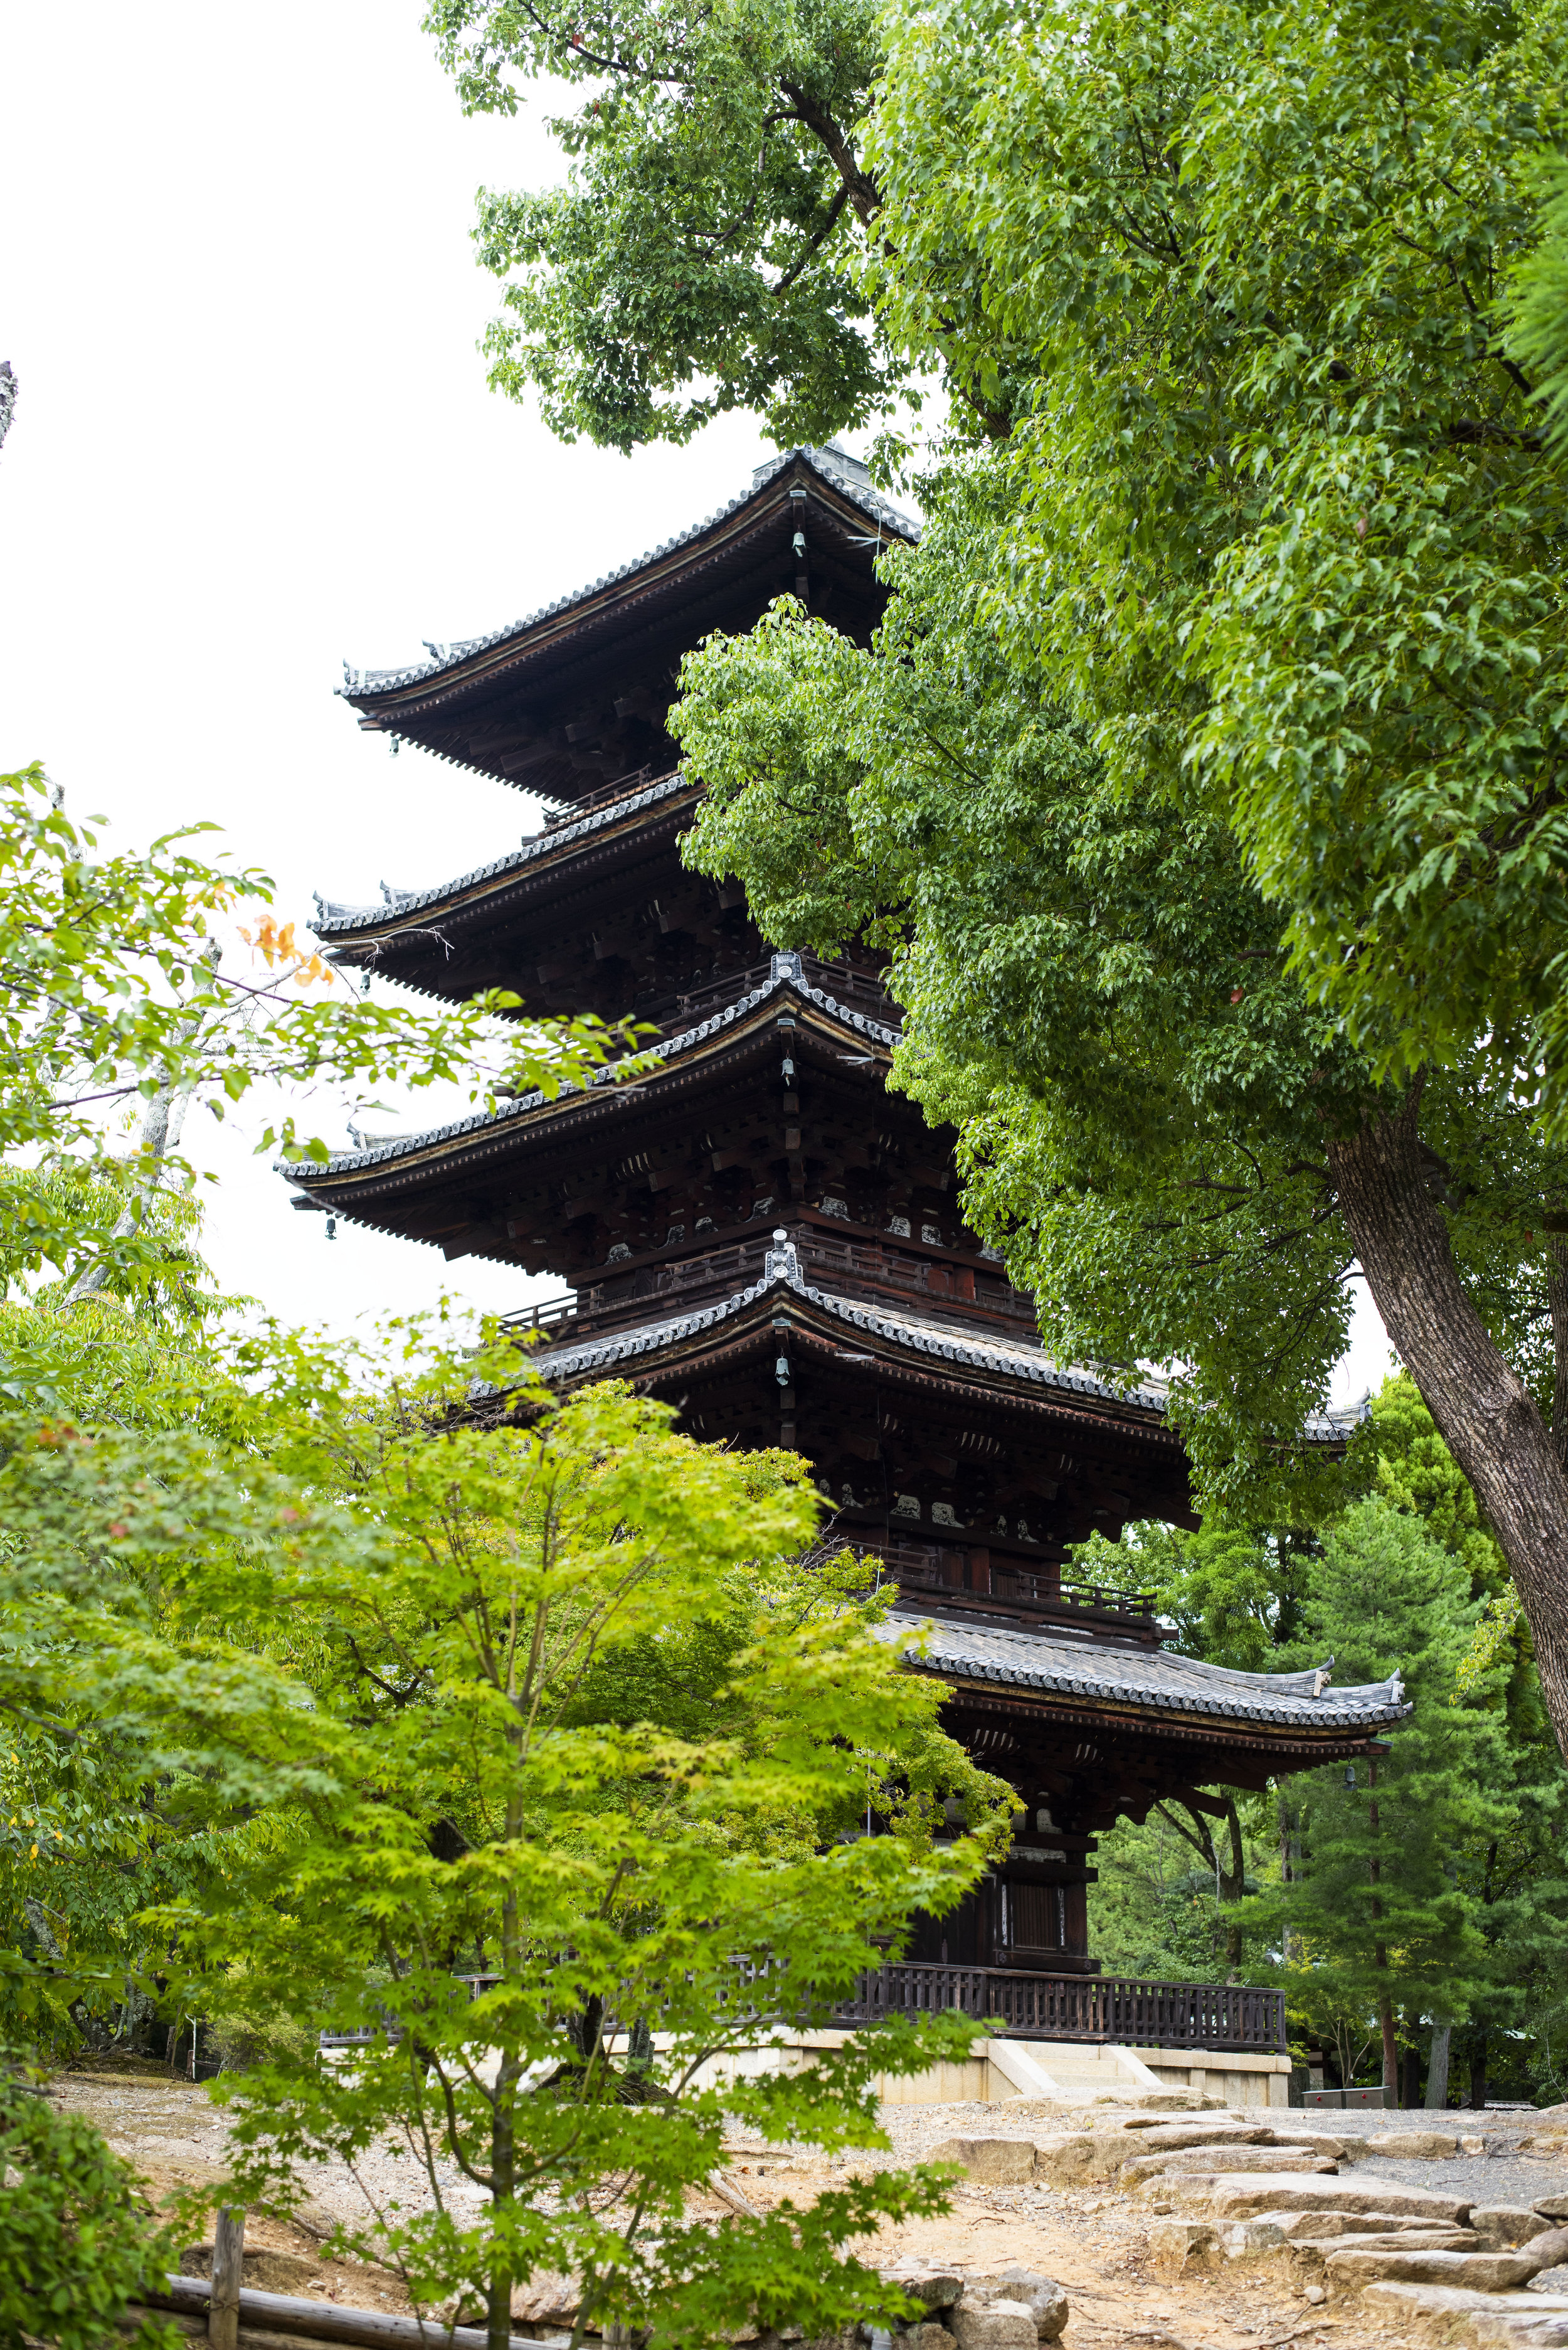 A five-storey pagoda at the Ninna-Ji Temple founded in 888 AD, Kyoto